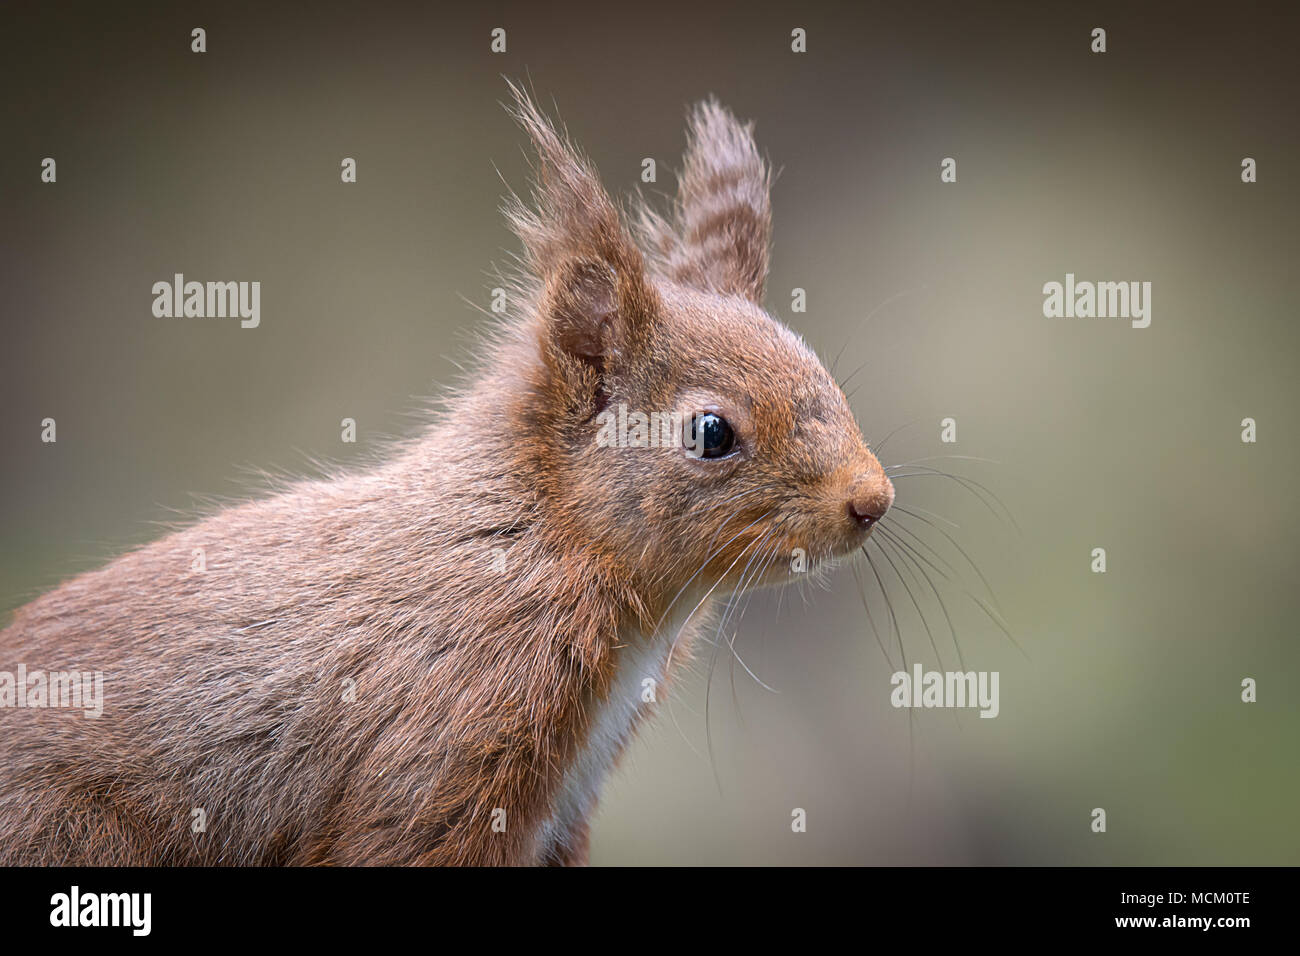 A close up head portrait of a very alert red squirrel keeping its eye open for predators - Stock Image